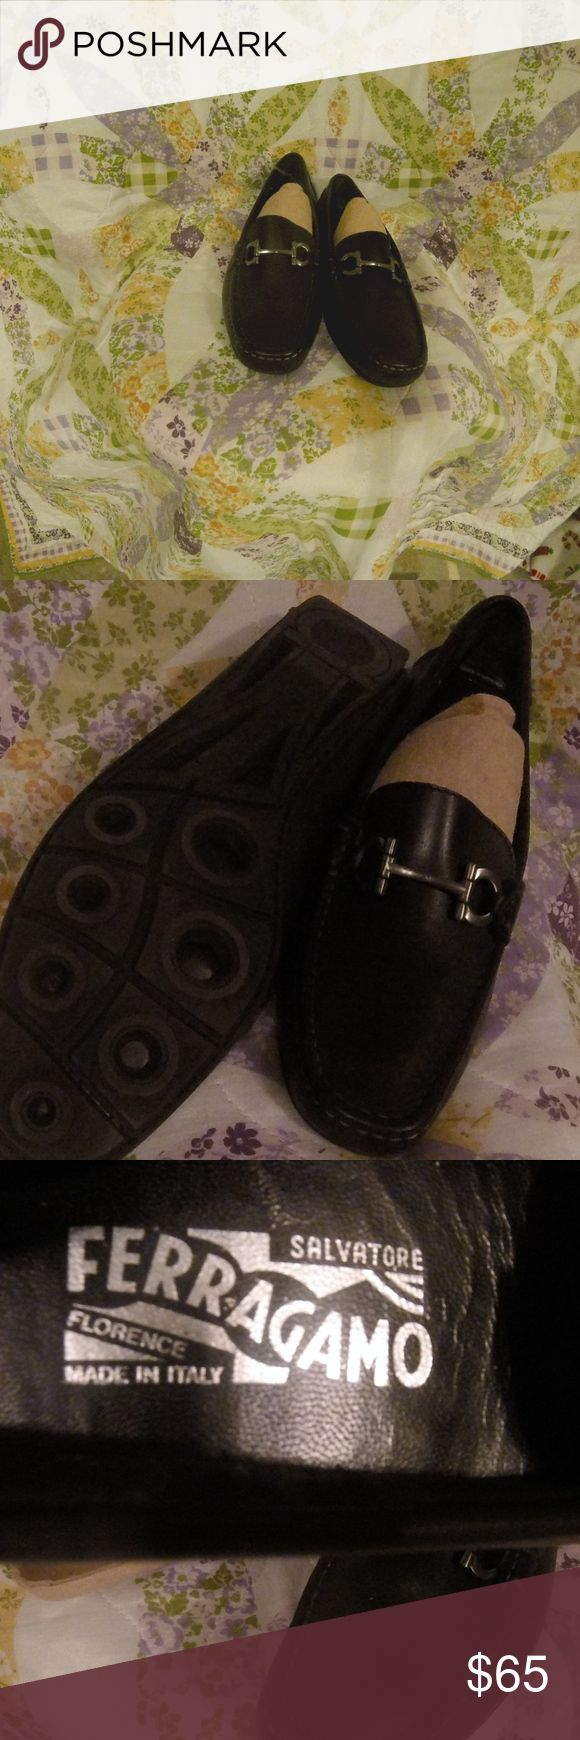 salvatore ferragamo ladies shoes new ladies size 8.5 italian leather loafer flat type shoes. unique design rubber outsole, gun metal color accents. A walk across town, or a test drive in a BMW? Be comfortable and stylish in these. Salvatore Ferragamo Shoes Flats & Loafers